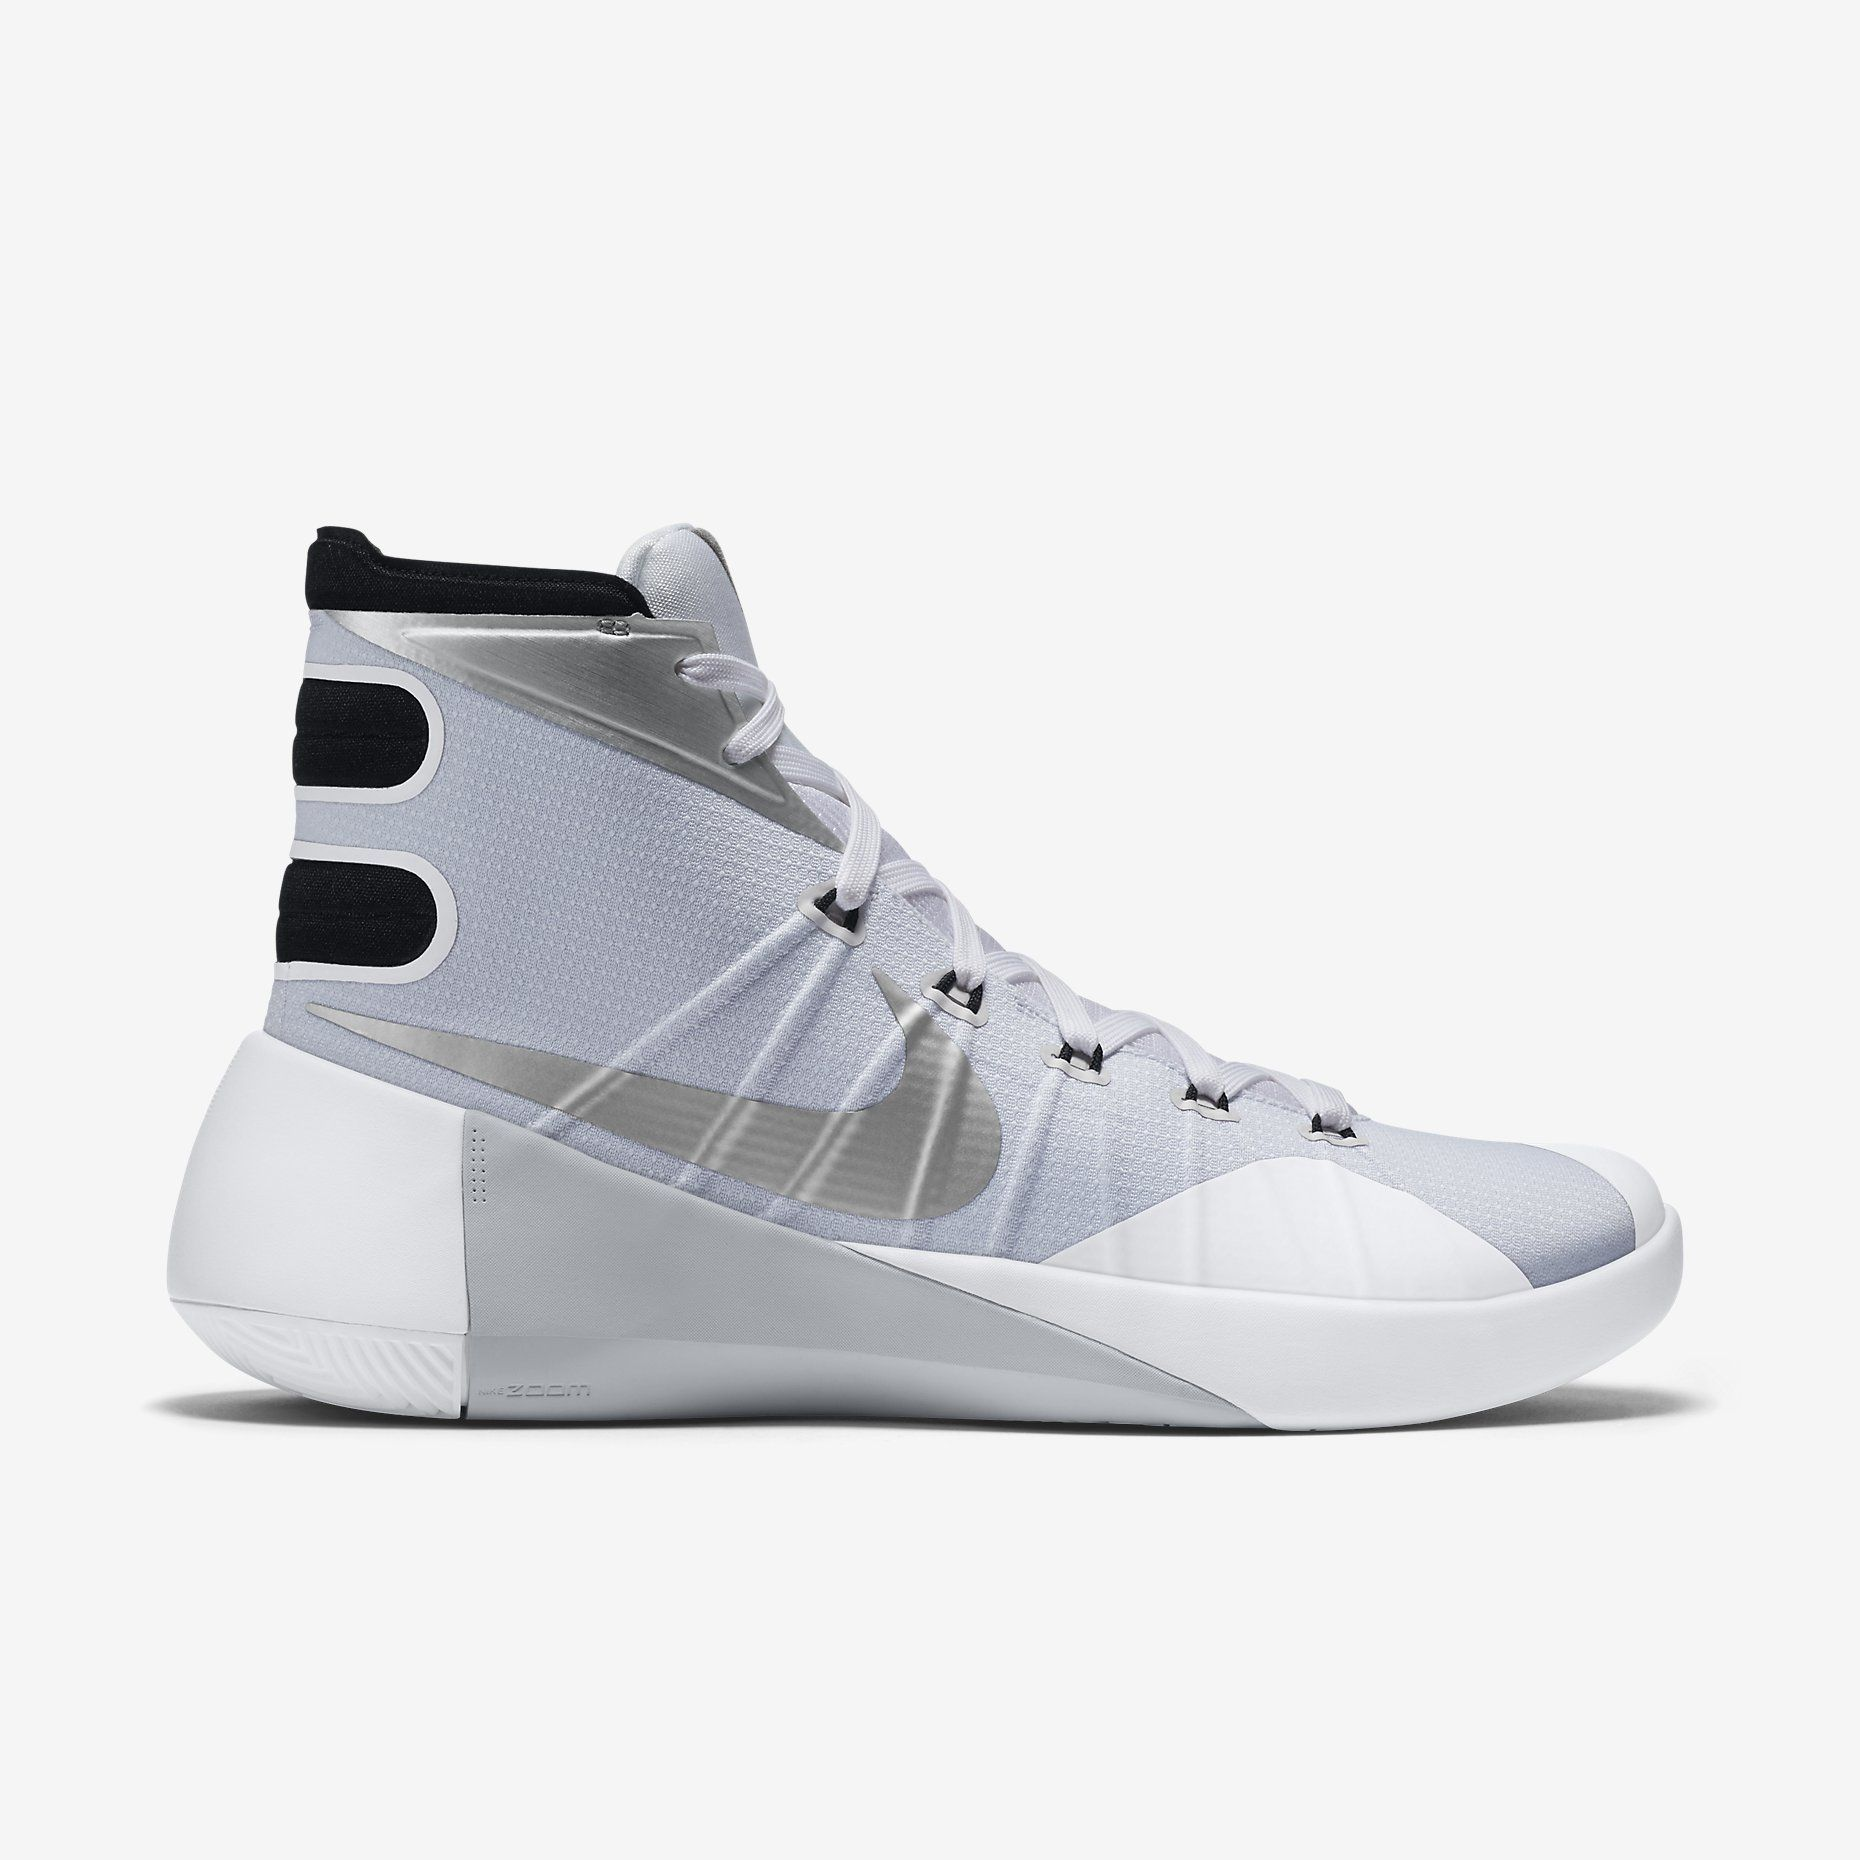 shox classic low price hyperdunks